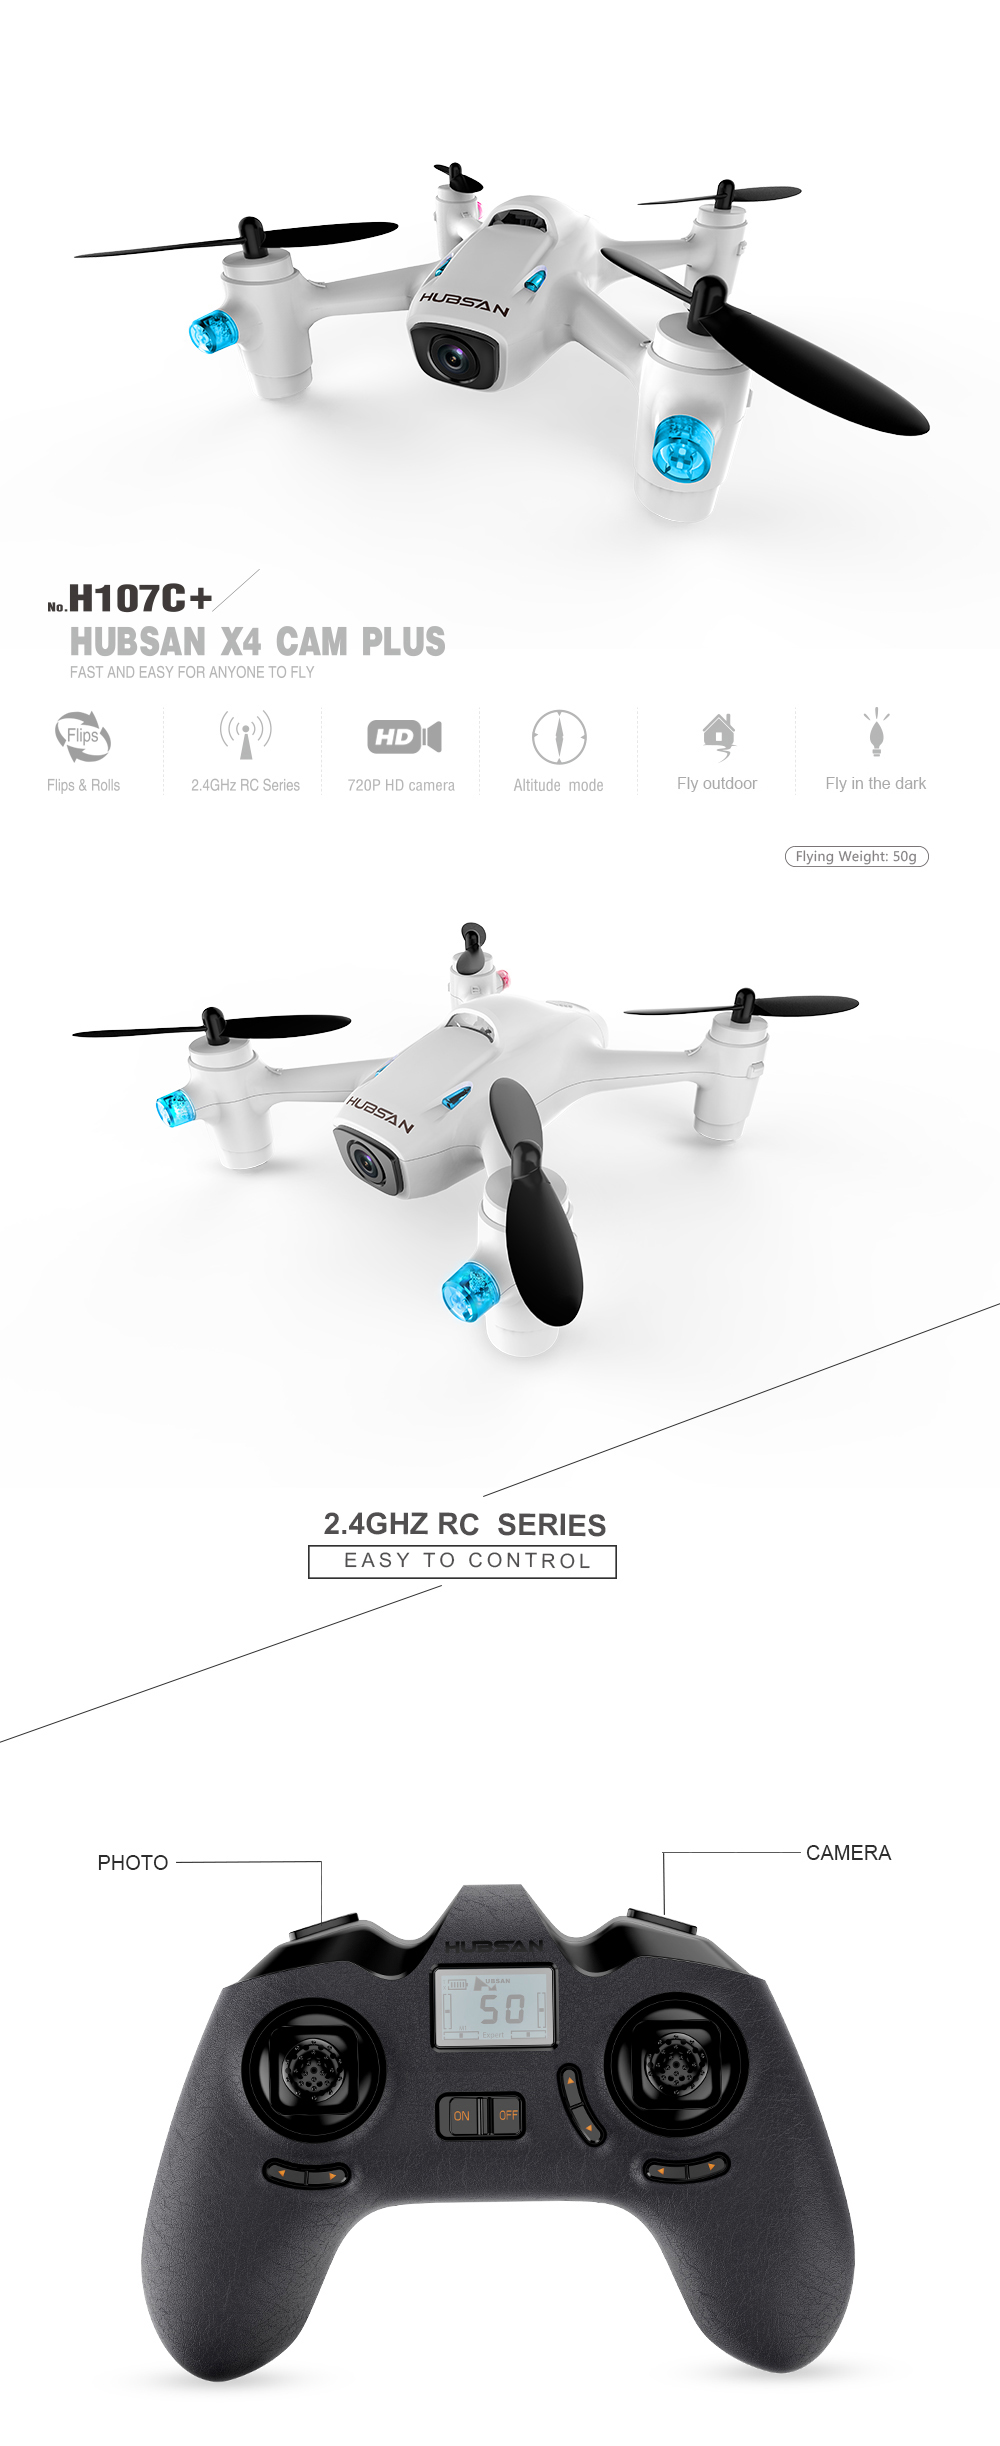 HUBSON H107C DRONE X4 CAMP PLUS